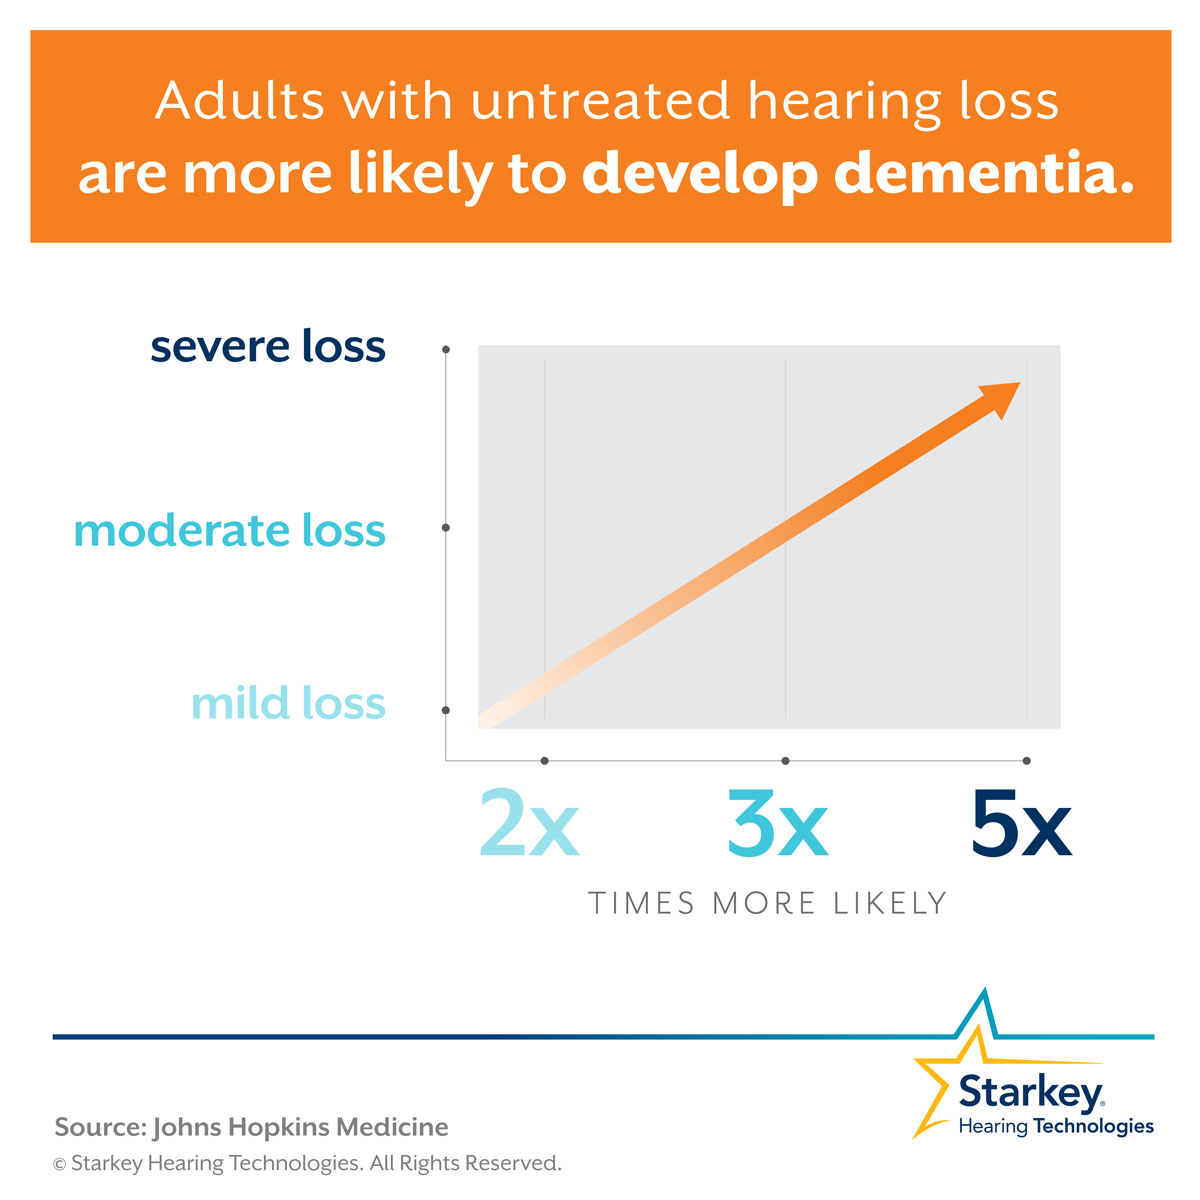 Dementia is two-to-five times more likely to occur in adults with untreated hearing loss.